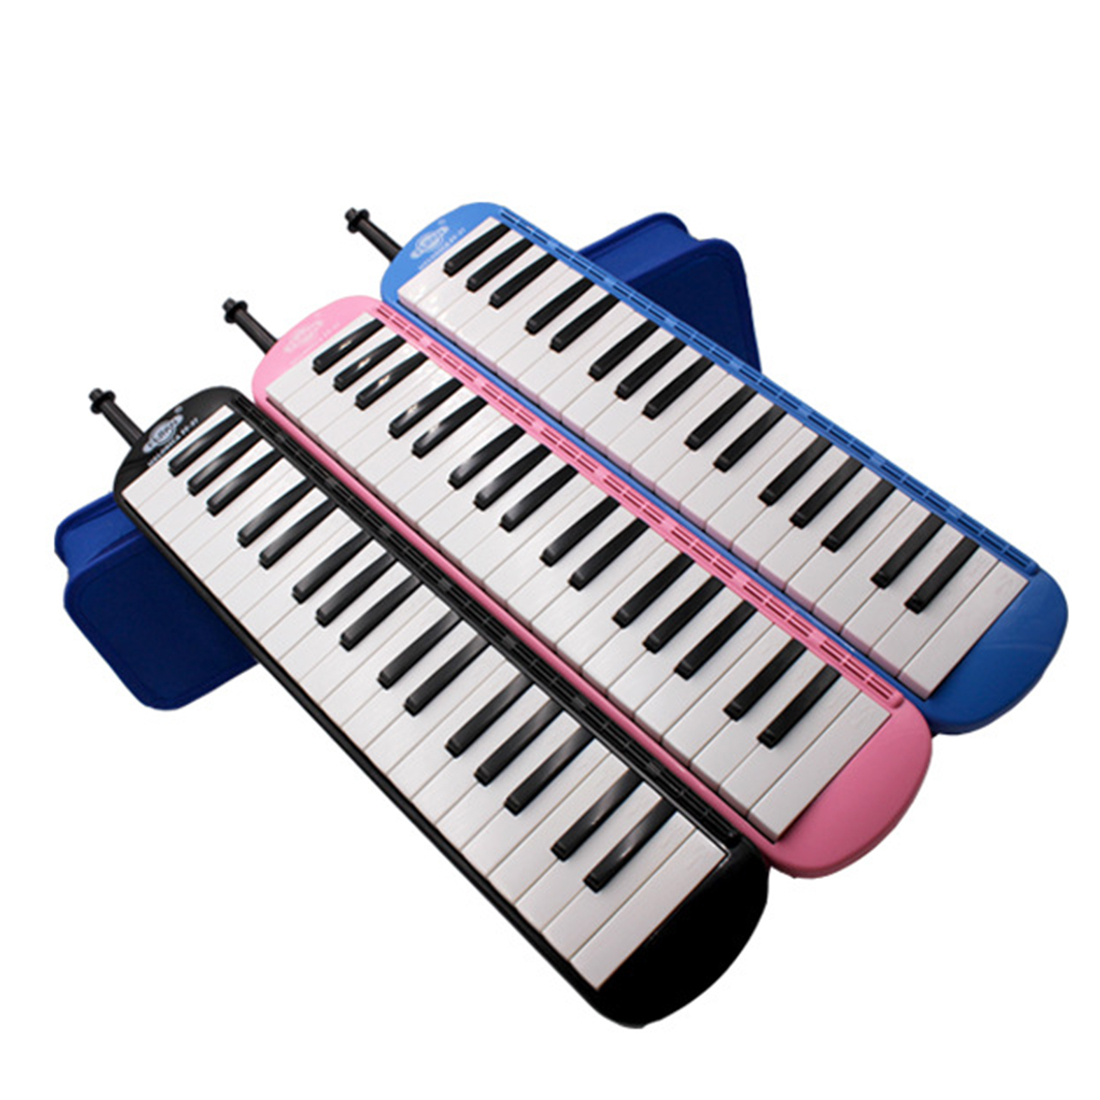 <font><b>37</b></font> <font><b>Keys</b></font> <font><b>Melodica</b></font> Piano Style Pianica Musical Education Instrument Toy Musical Instrument 2019 Christmas Gift- Green image